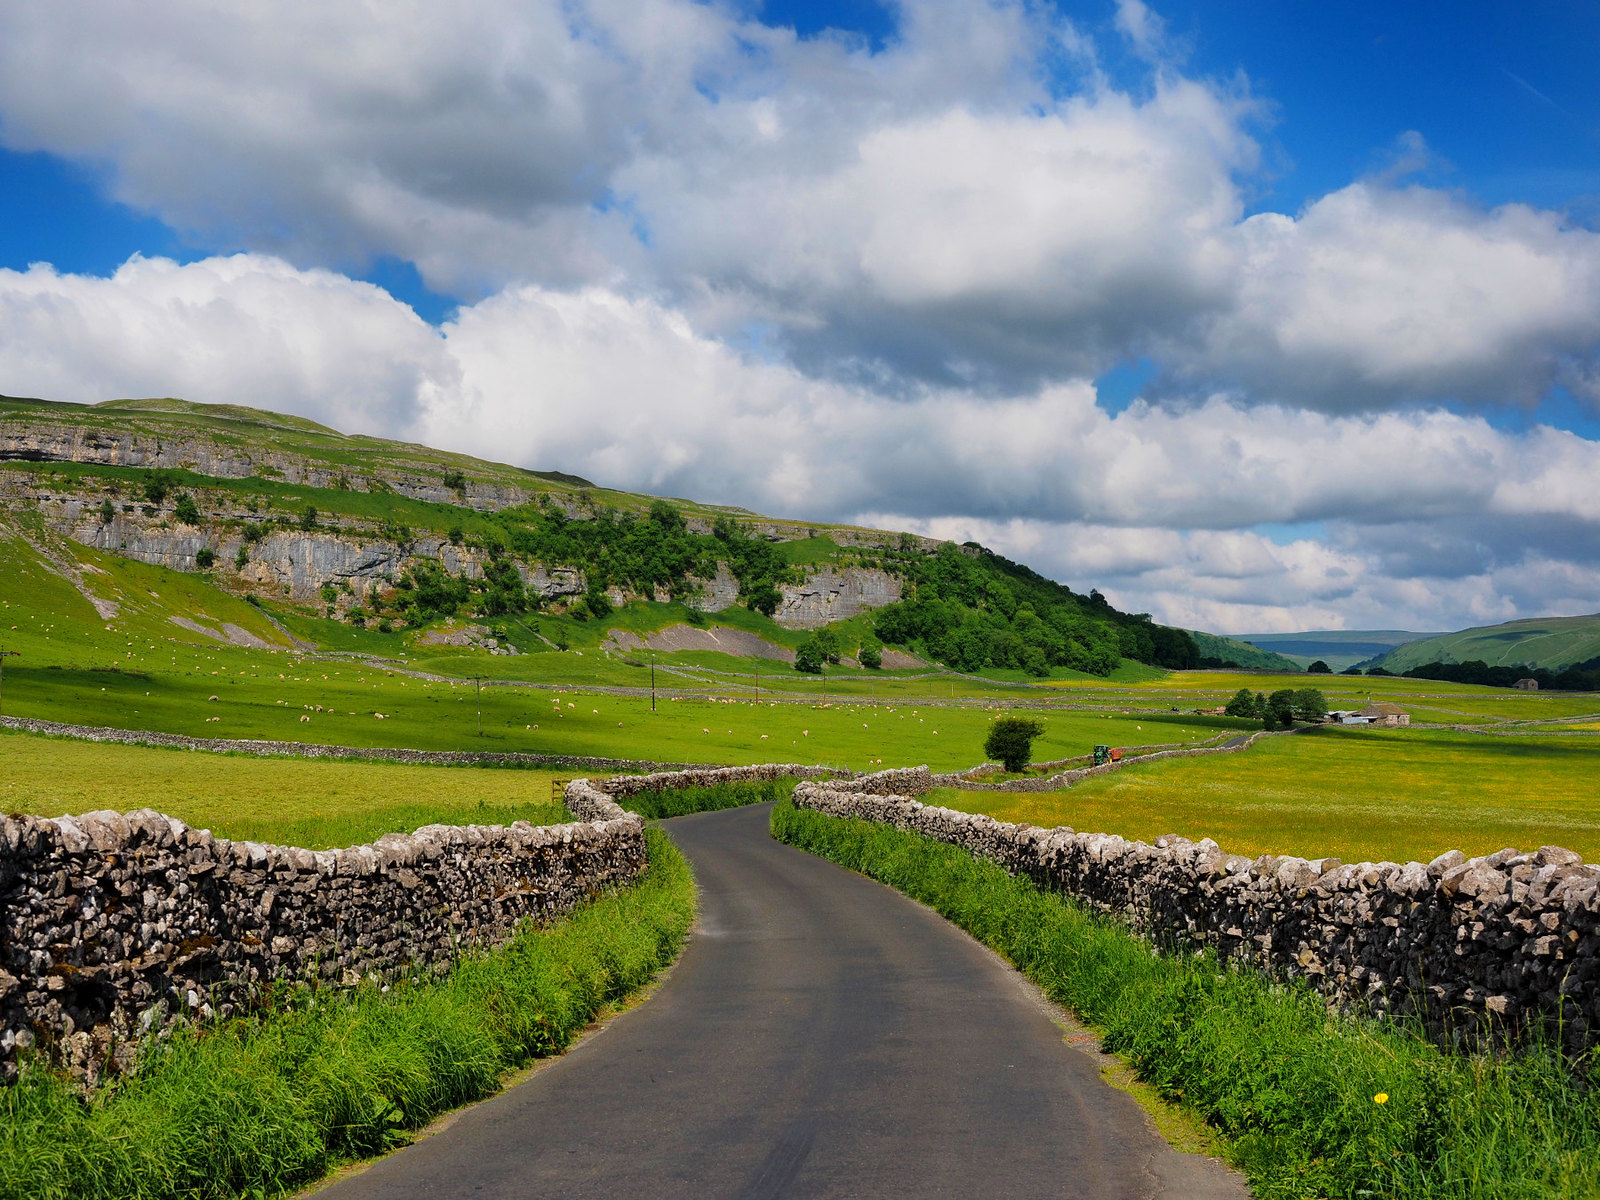 Winding road through Littondale. Credit Kreuzschnabel